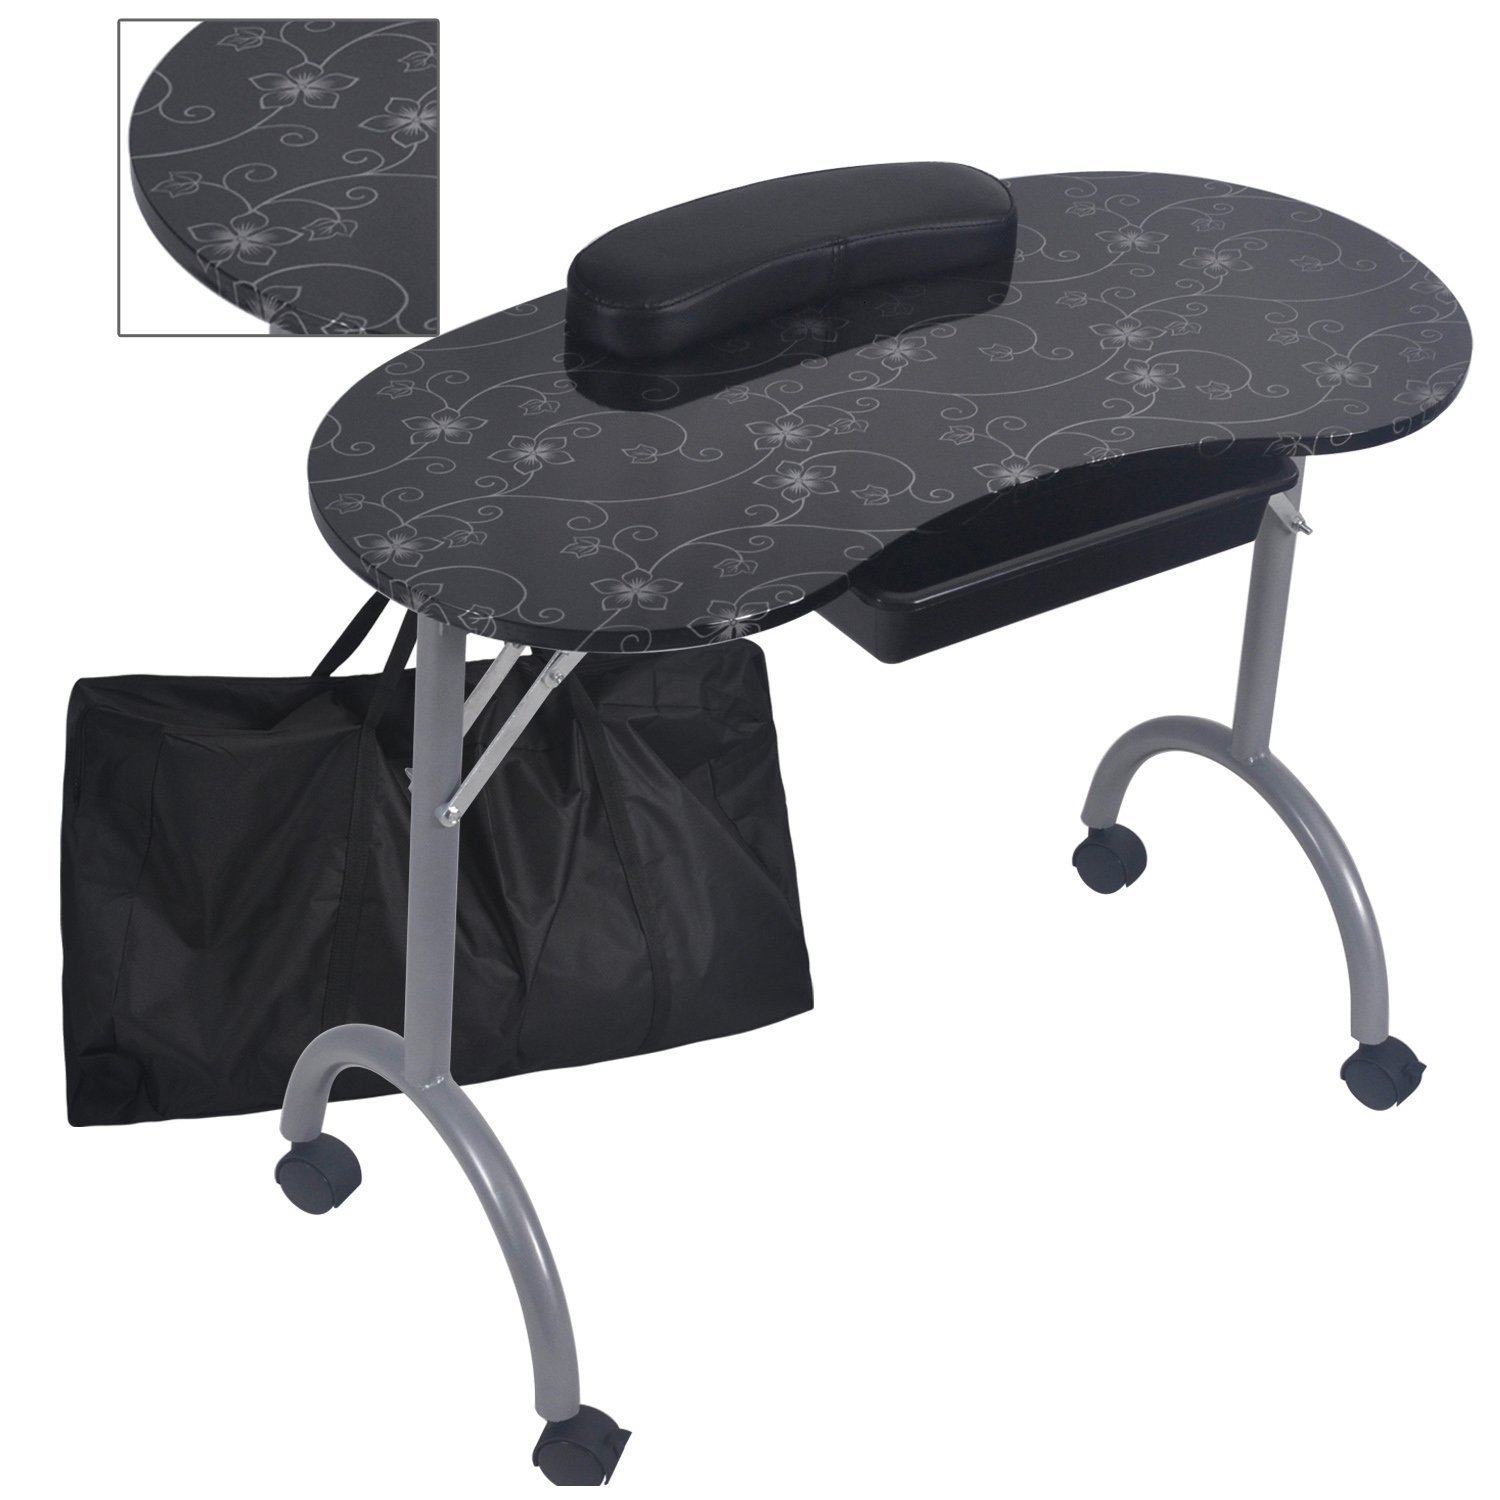 Fashion Pattern With Bag Stable And Durable Removable Portable Folding Nail Table    Movable Wheel Drawer MT-017F